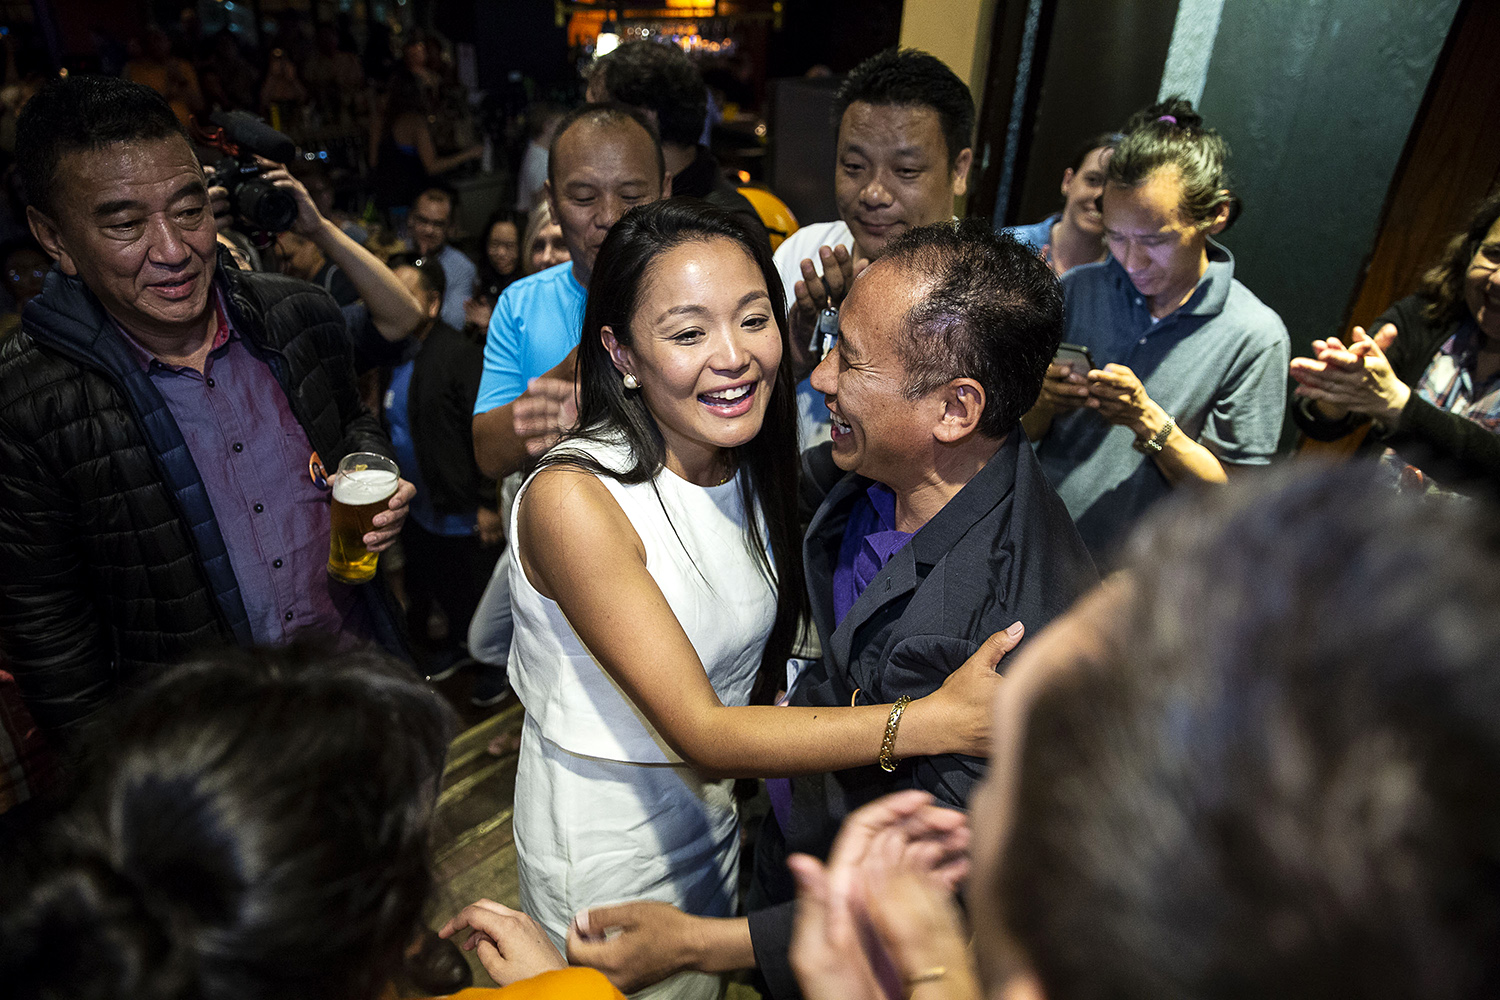 NDP candidate Bhutila Karpoche, celebrates her victory with supporters at the post election party, Toronto, Thursday, June 7, 2018. The rookie NDP candidate won the Parkdale-High Park riding by a wide margin and became the first Tibetan ever elected to public office in North America.